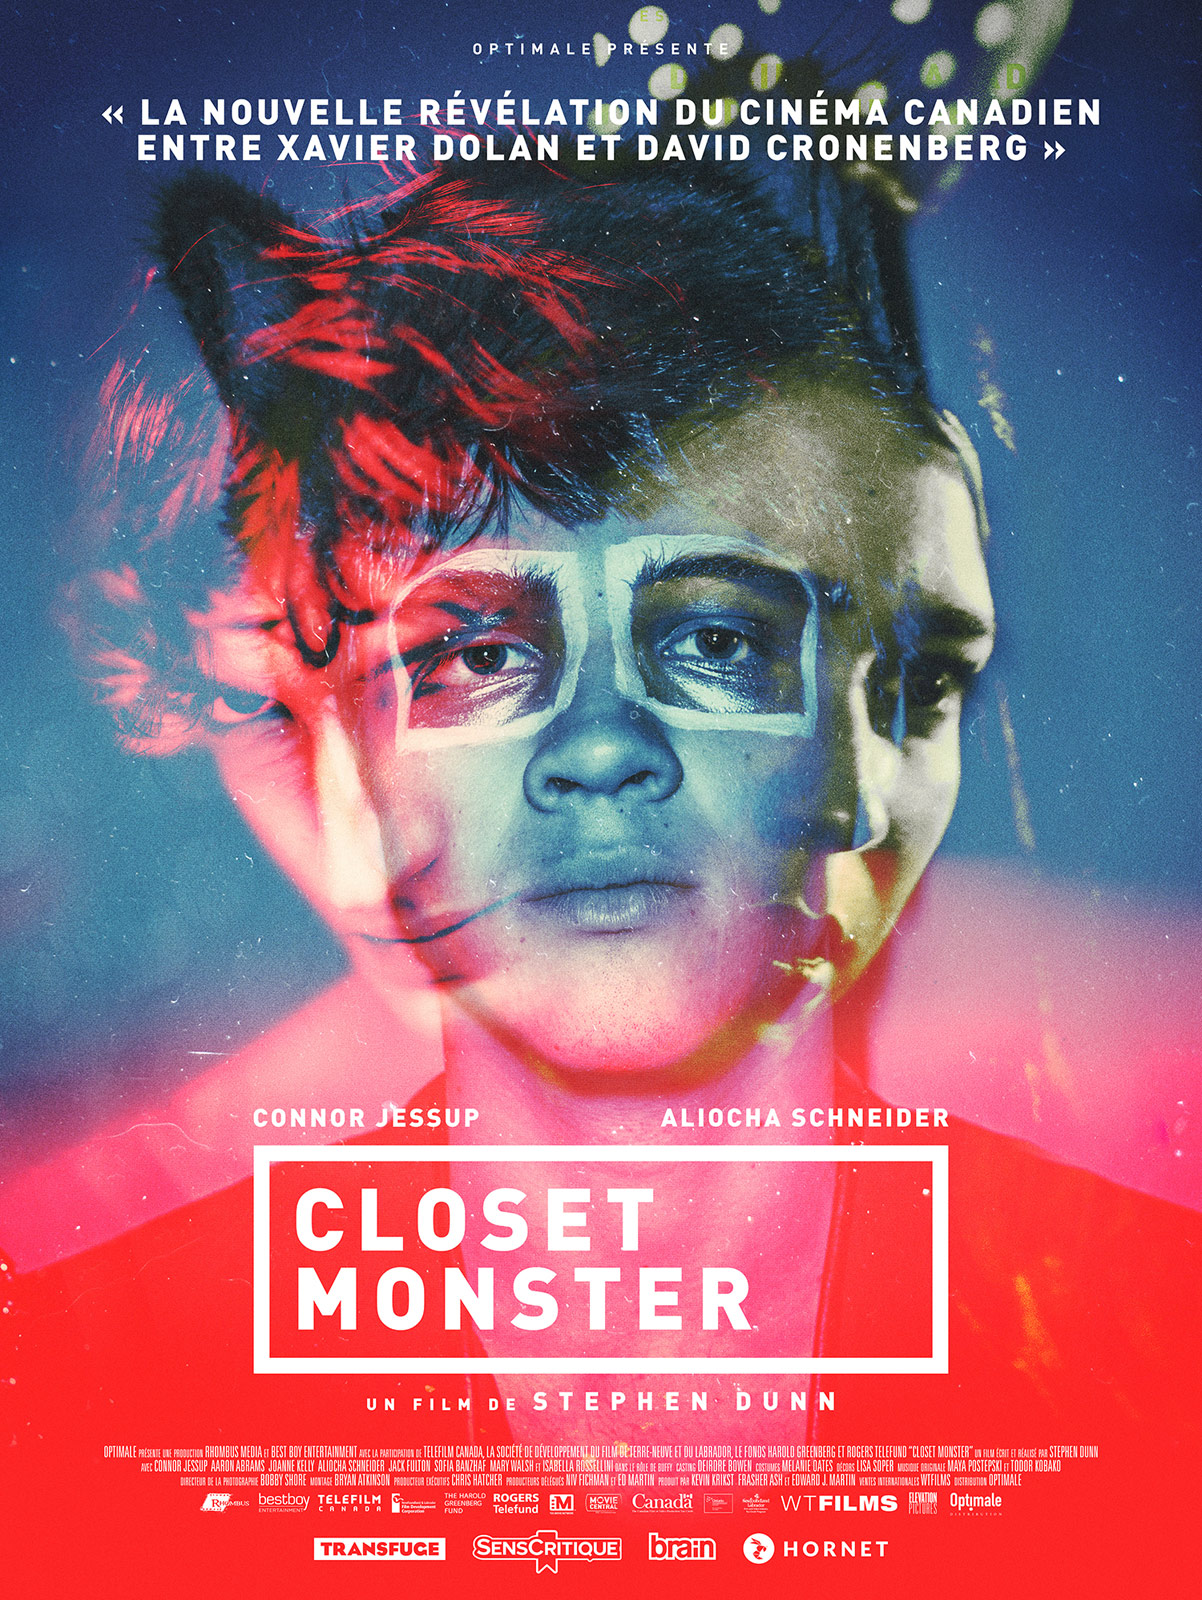 telecharger Closet Monster BDRIP 1080p